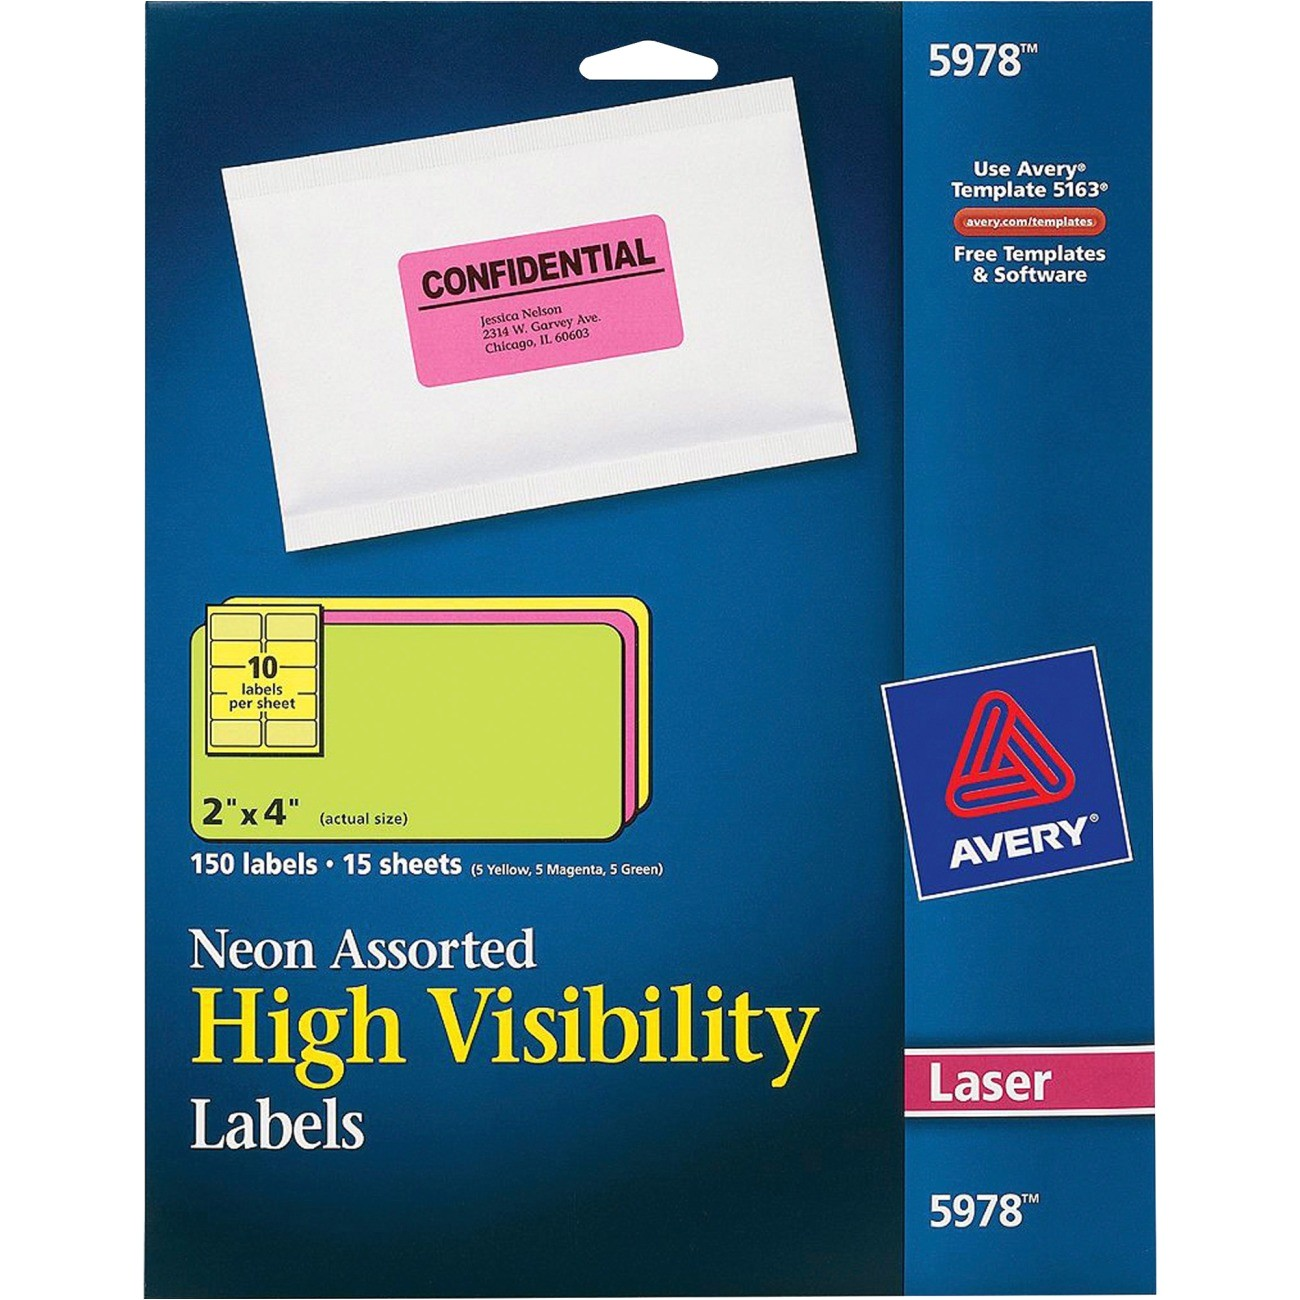 avery neon rectangular labels for laser and or inkjet printers 5978